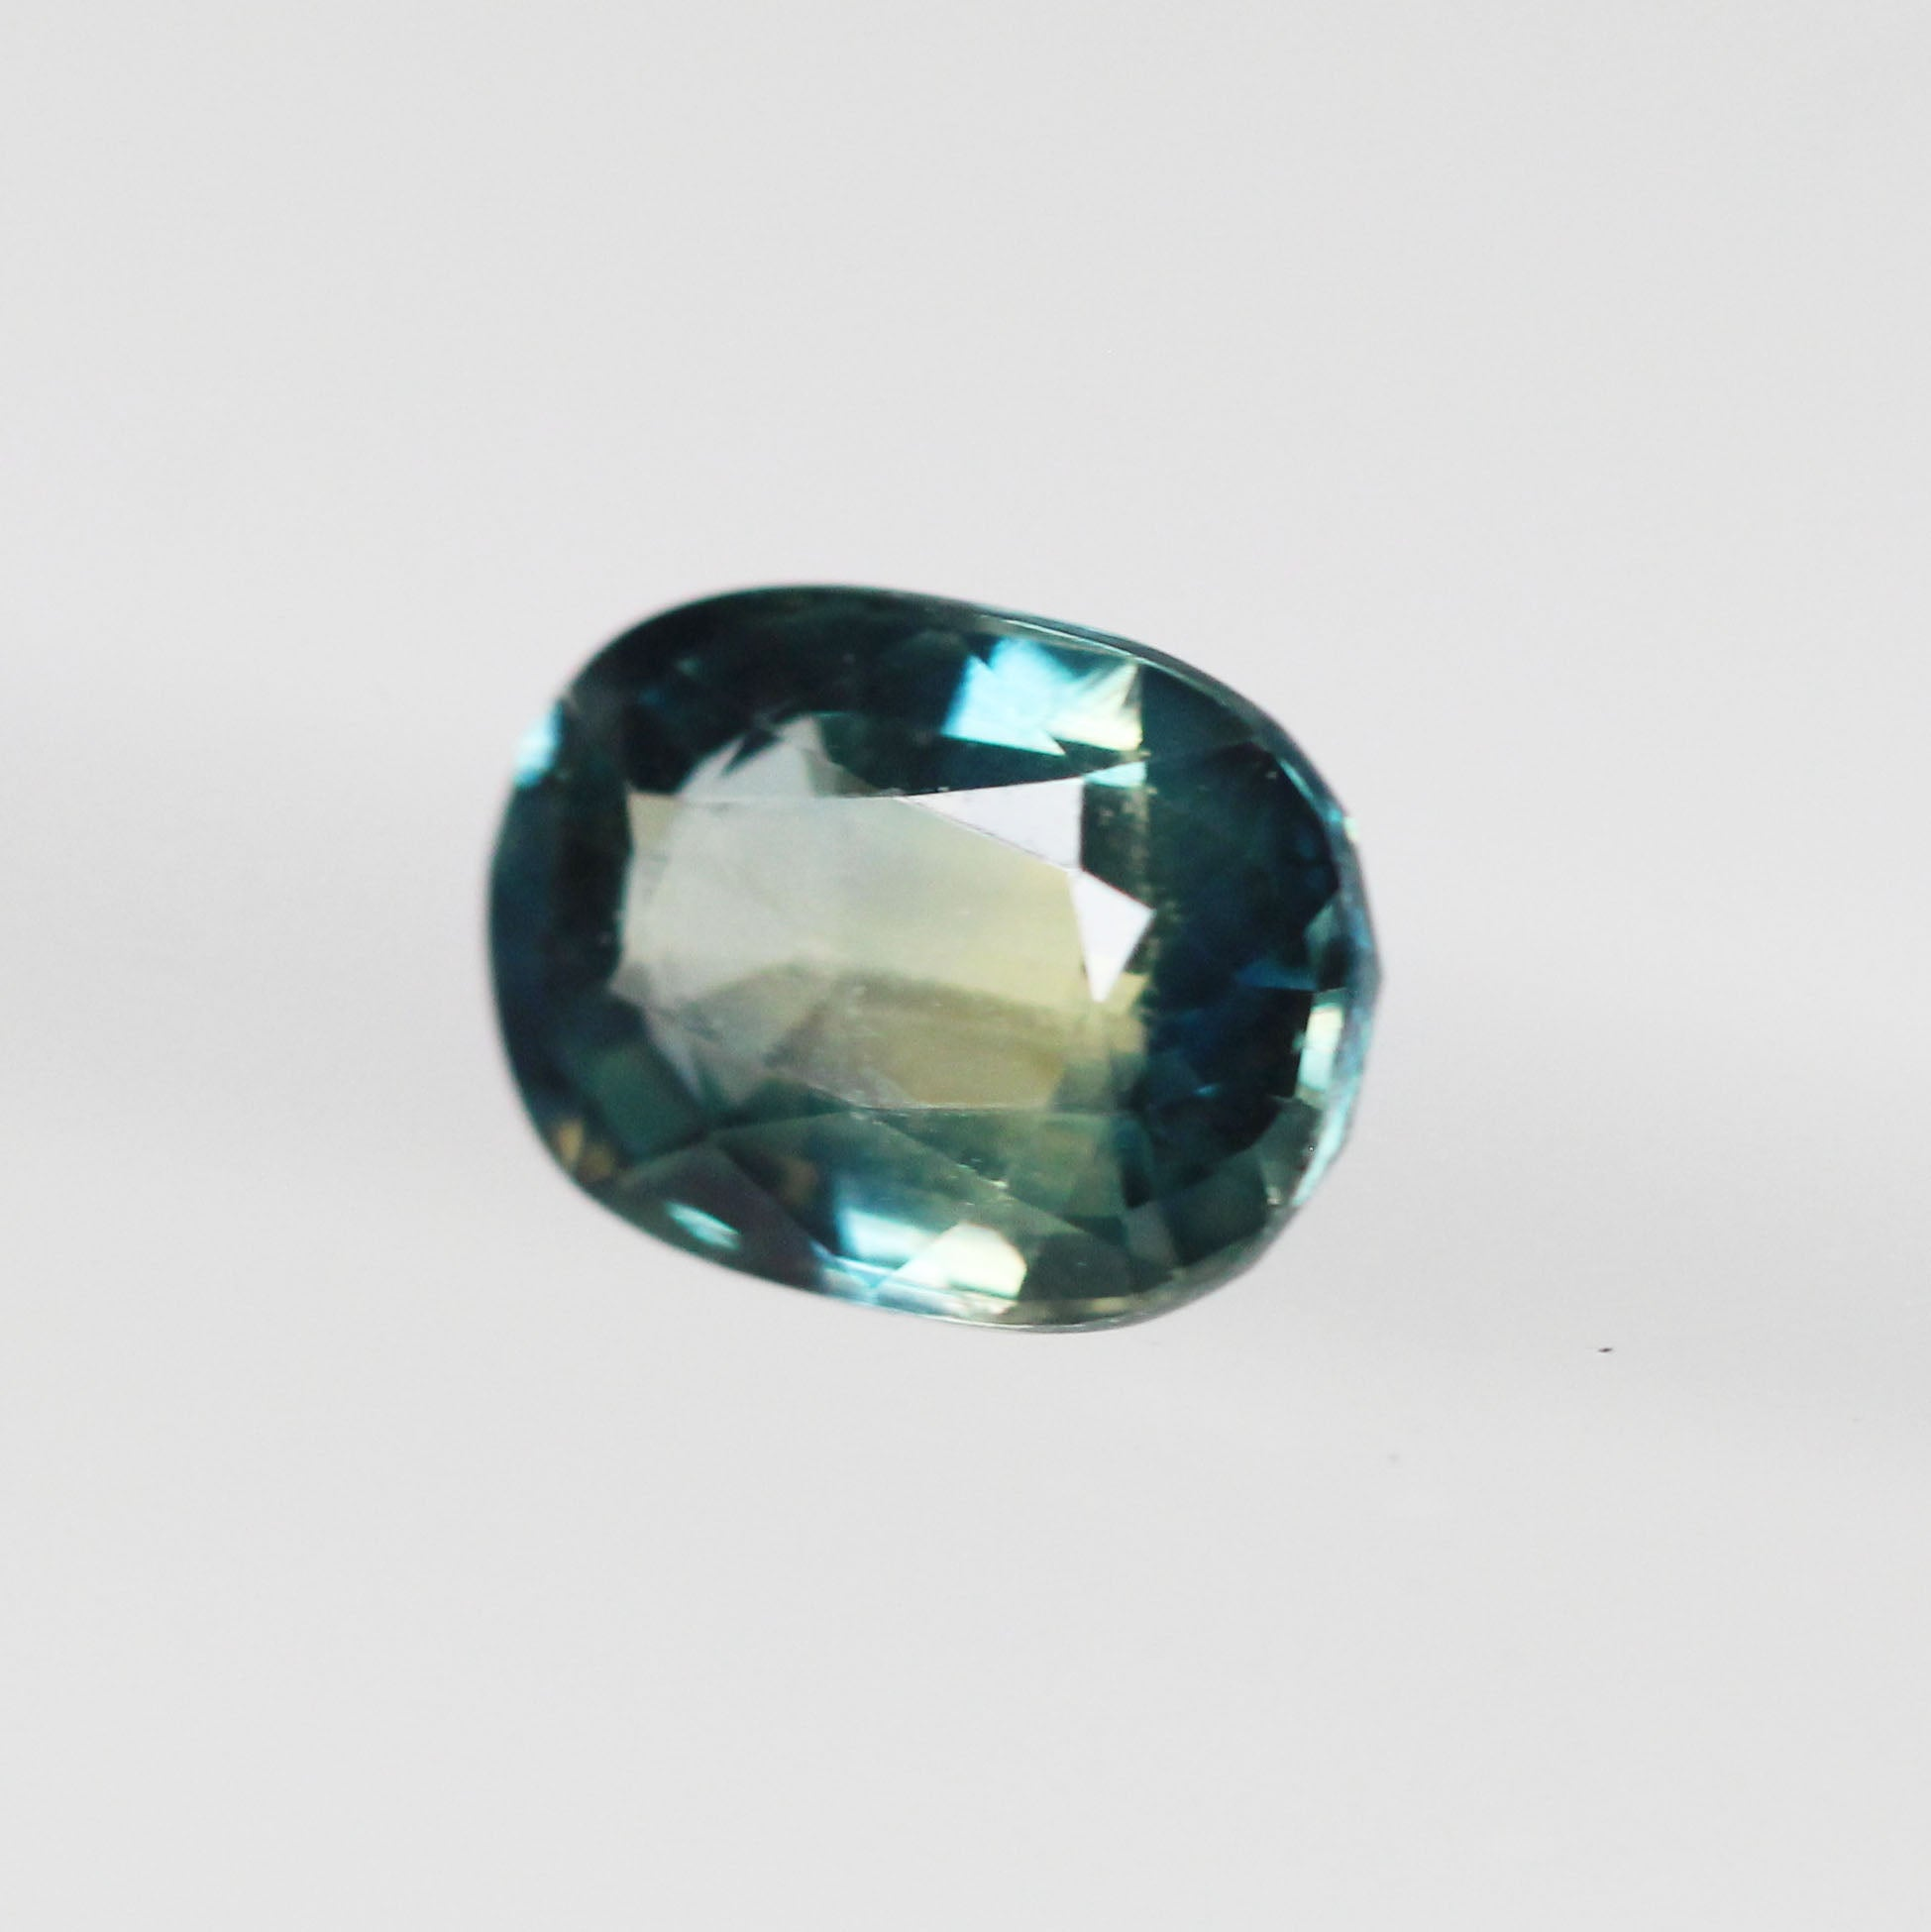 3.28 Carat Oval Sapphire for Custom Work- Inventory Code OBSAP328 - Celestial Diamonds ® by Midwinter Co.